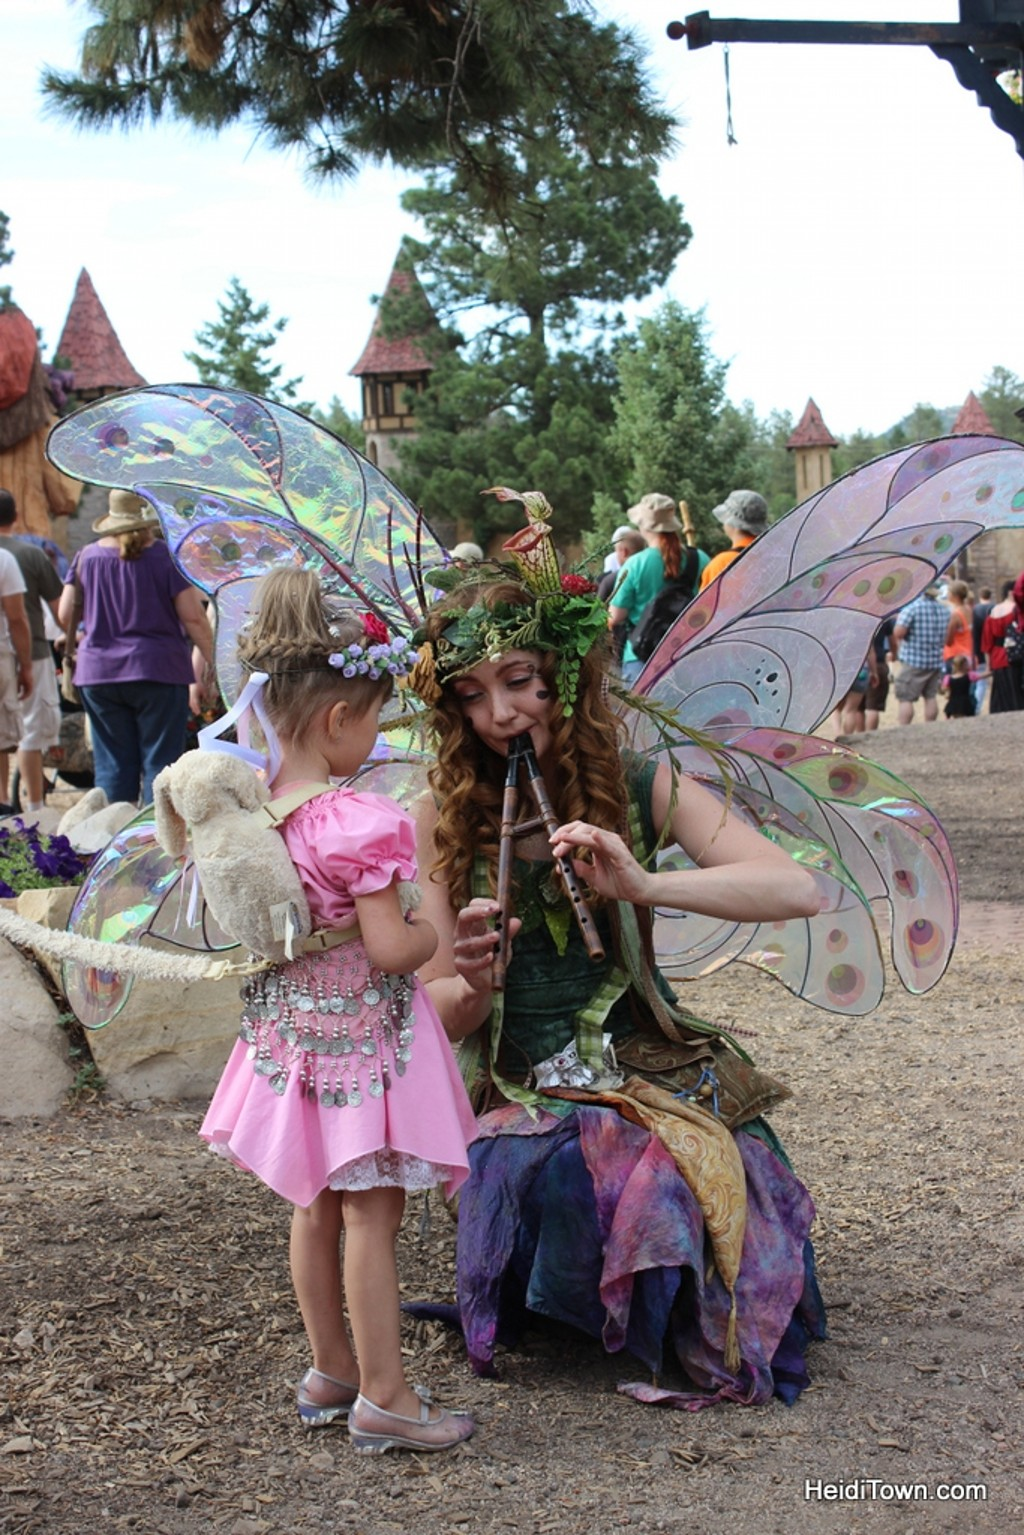 Twig the fairy at Colorado Renaissance Festival. HeidiTown.com (2)